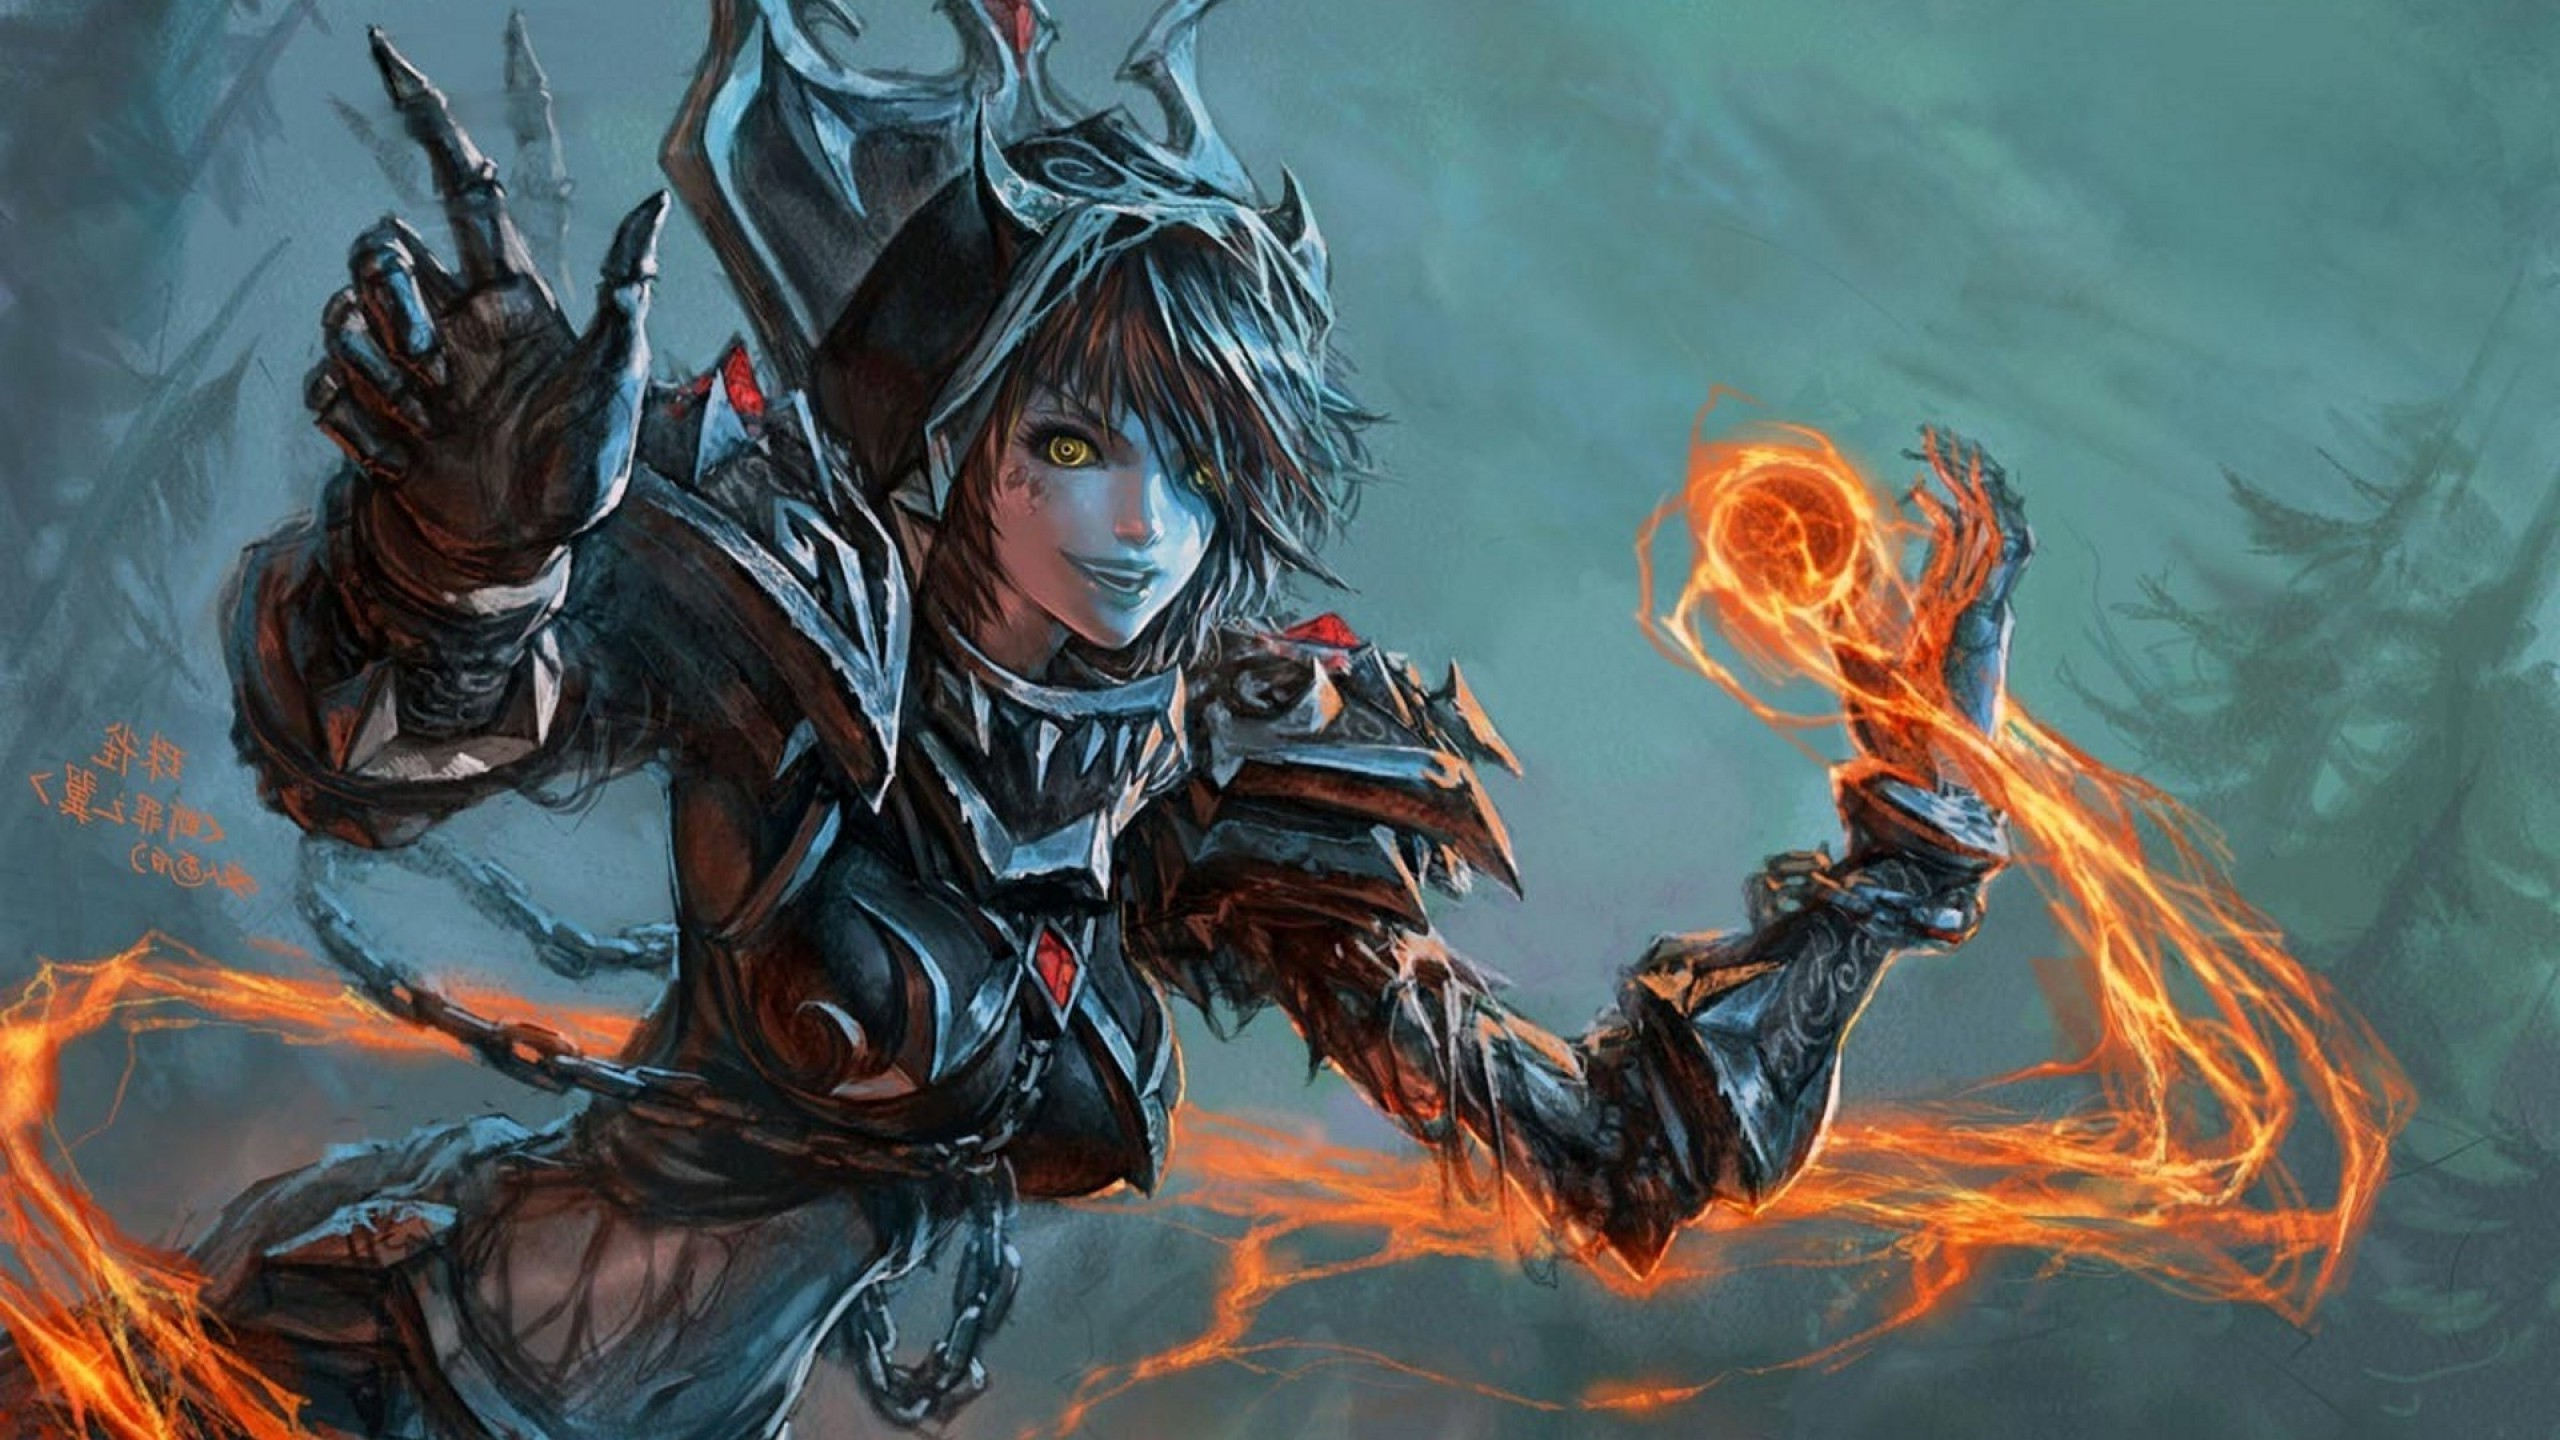 World Of Warcraft Wallpaper Hd ·① Download Free Awesome